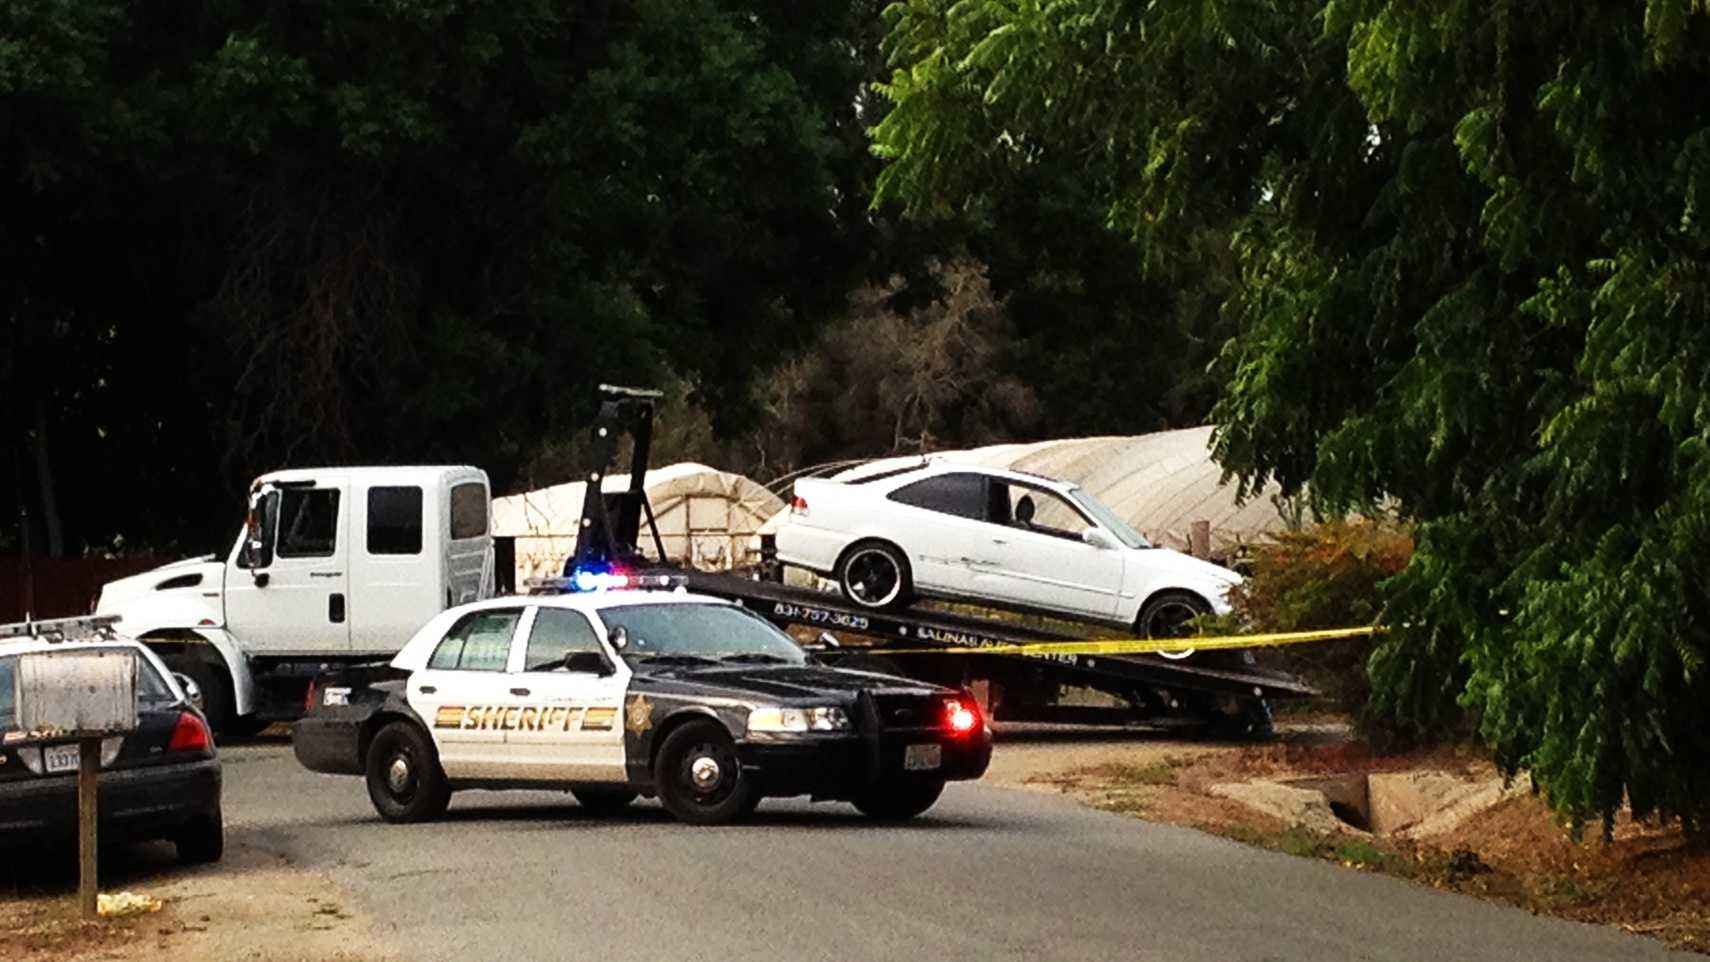 A Monterey County Sheriff's deputy shot and killed a man who was driving this stolen car near Prunedale. (Aug. 9, 2013)